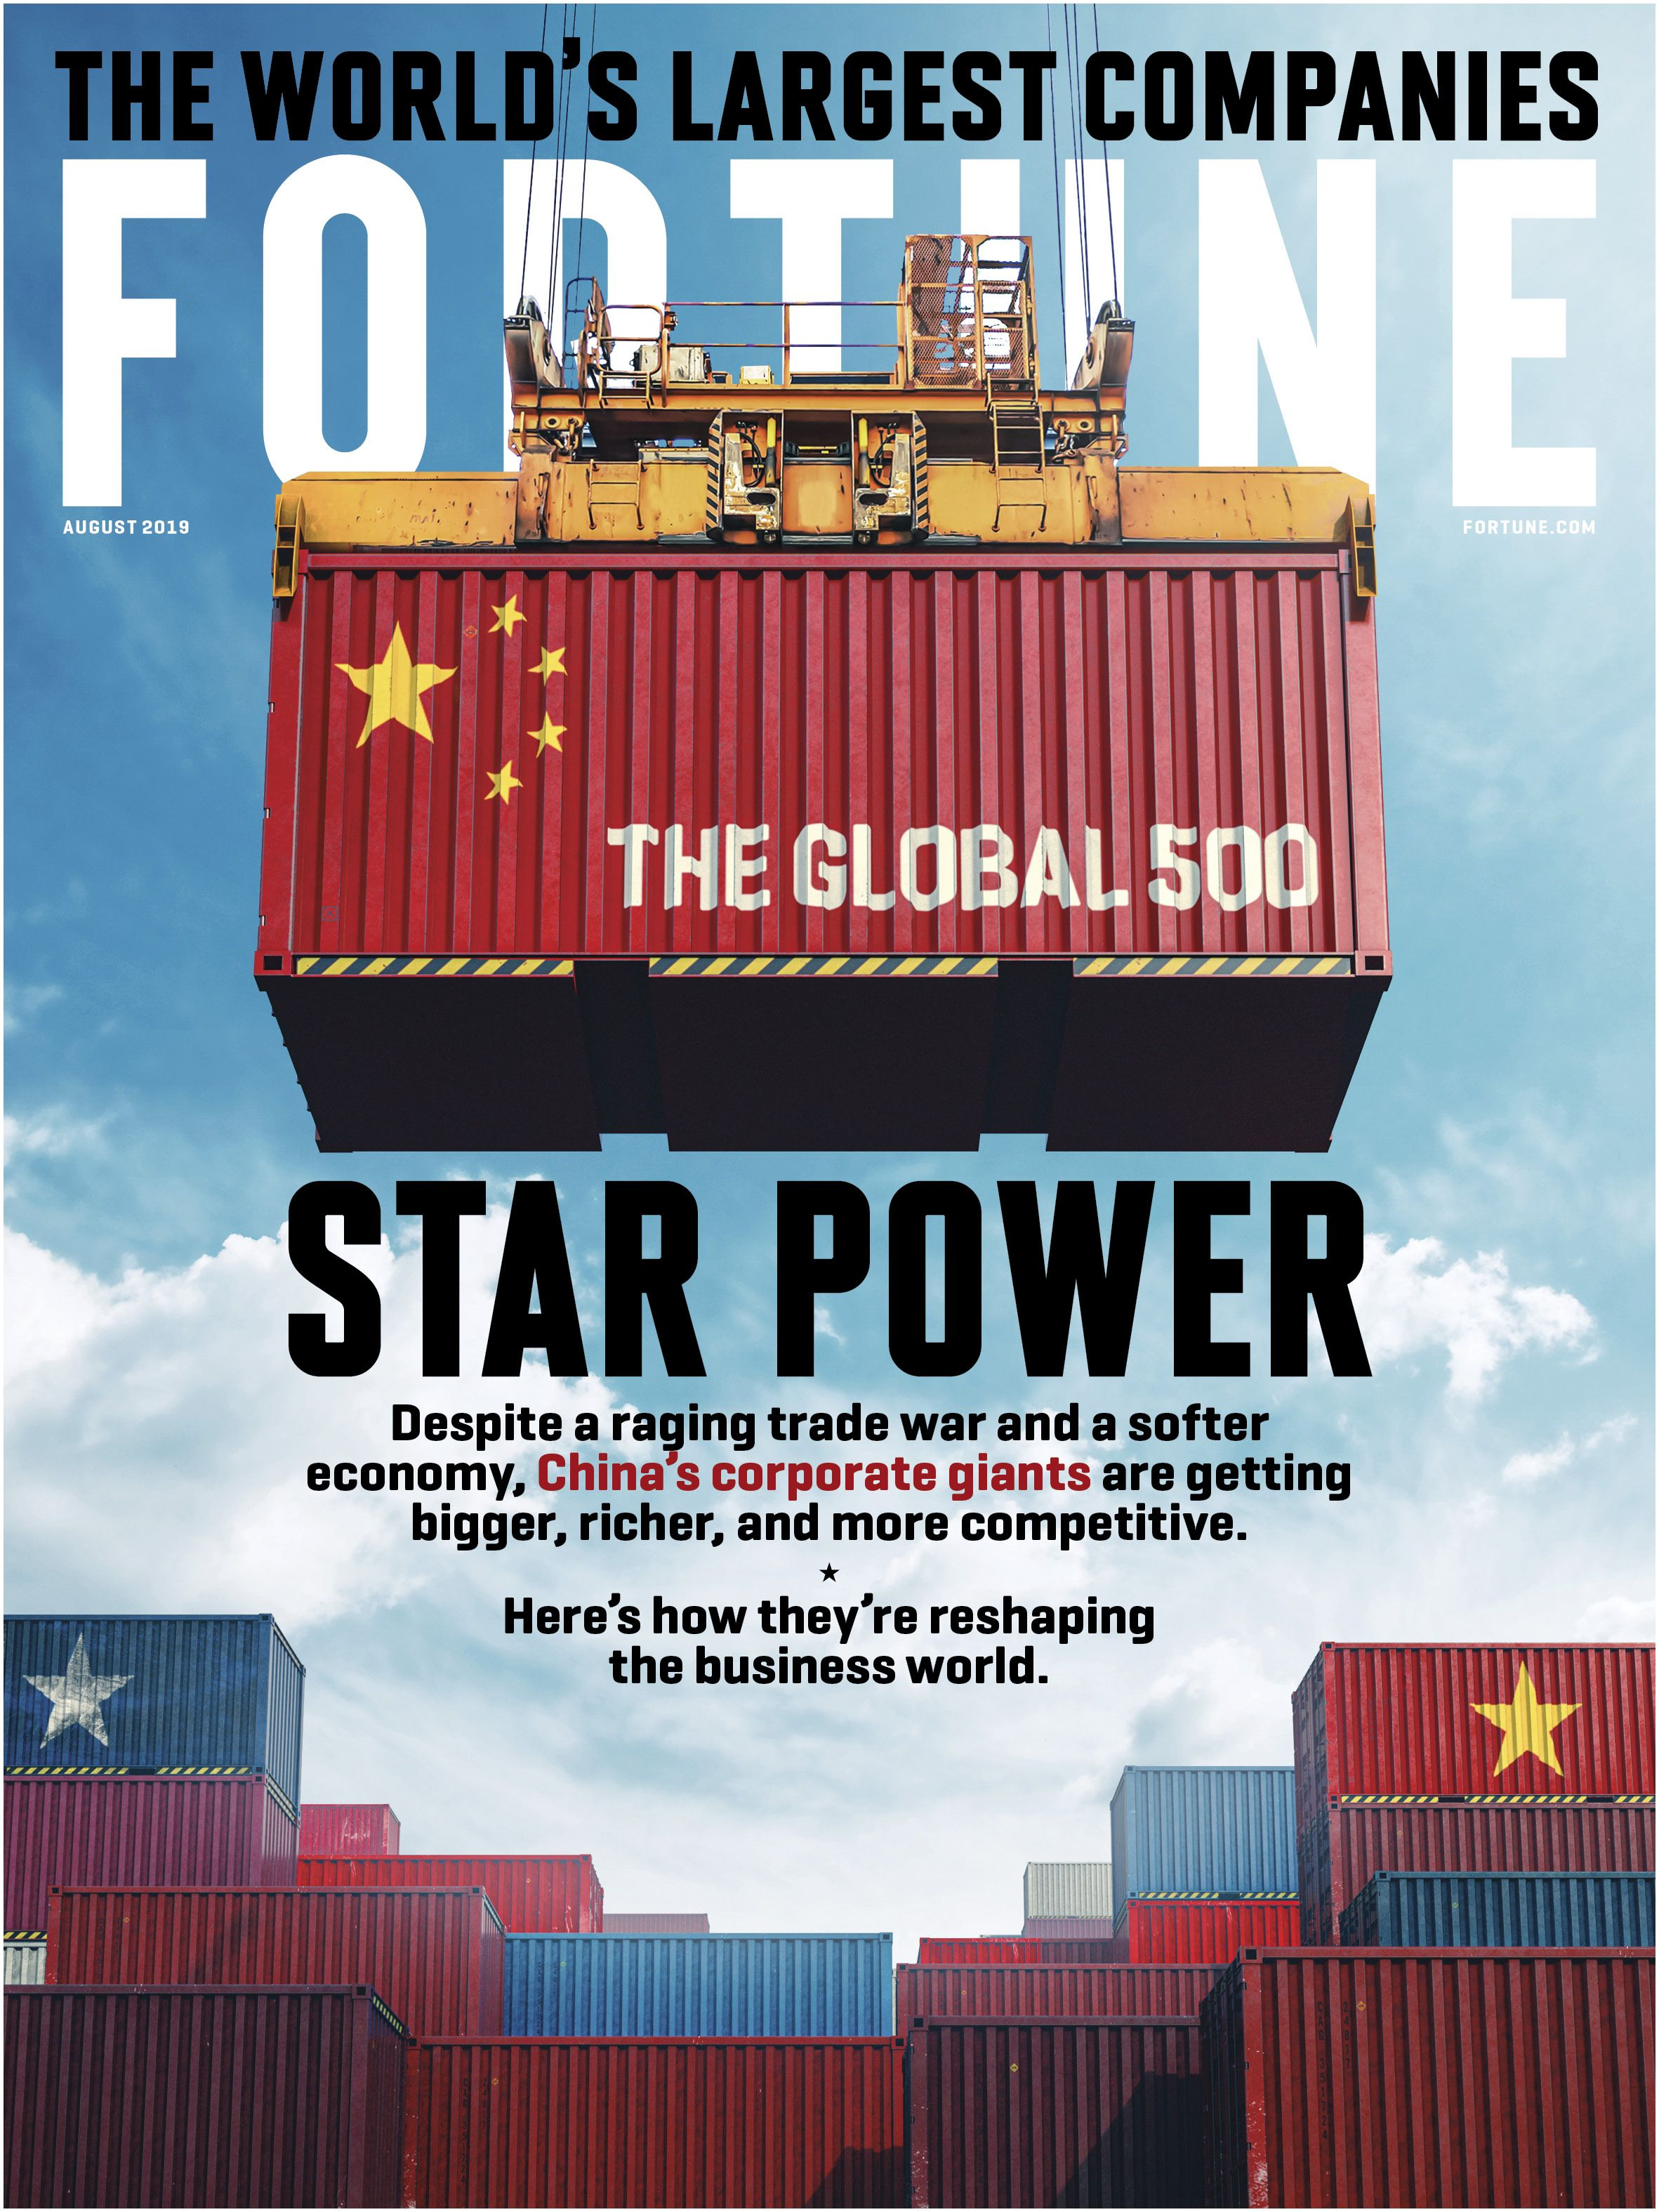 Fortune Magazine Subscription Deals fortune fortune 500 Daily & Breaking Business News